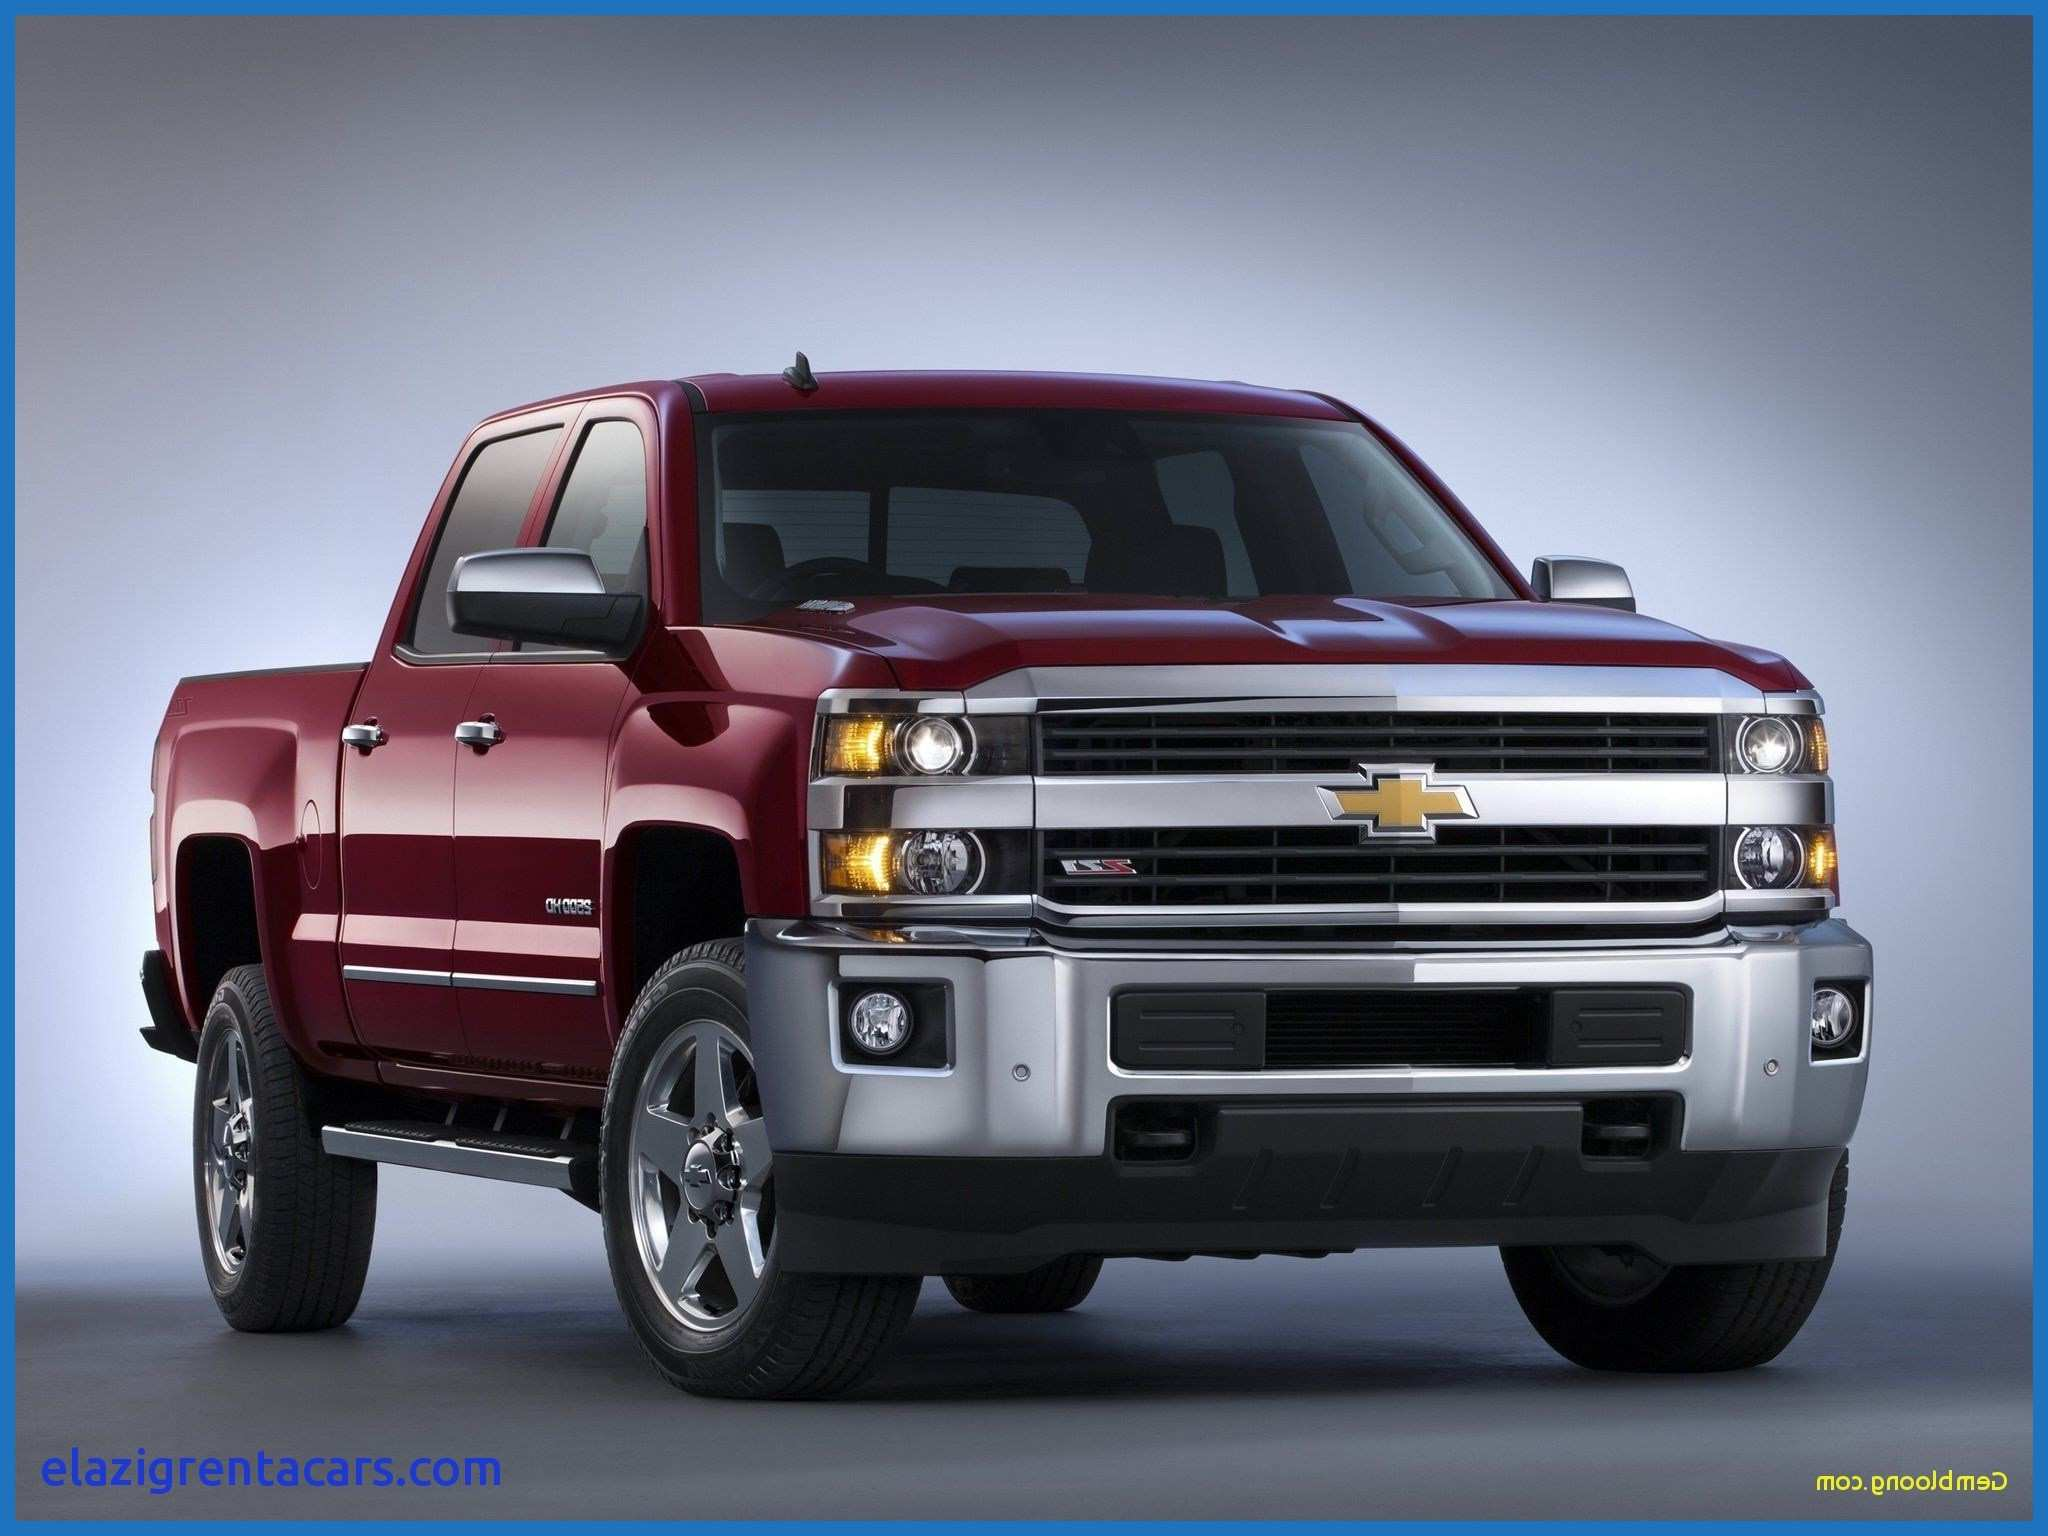 62 Best Review Spy Silverado 1500 Diesel Overview for Spy Silverado 1500 Diesel